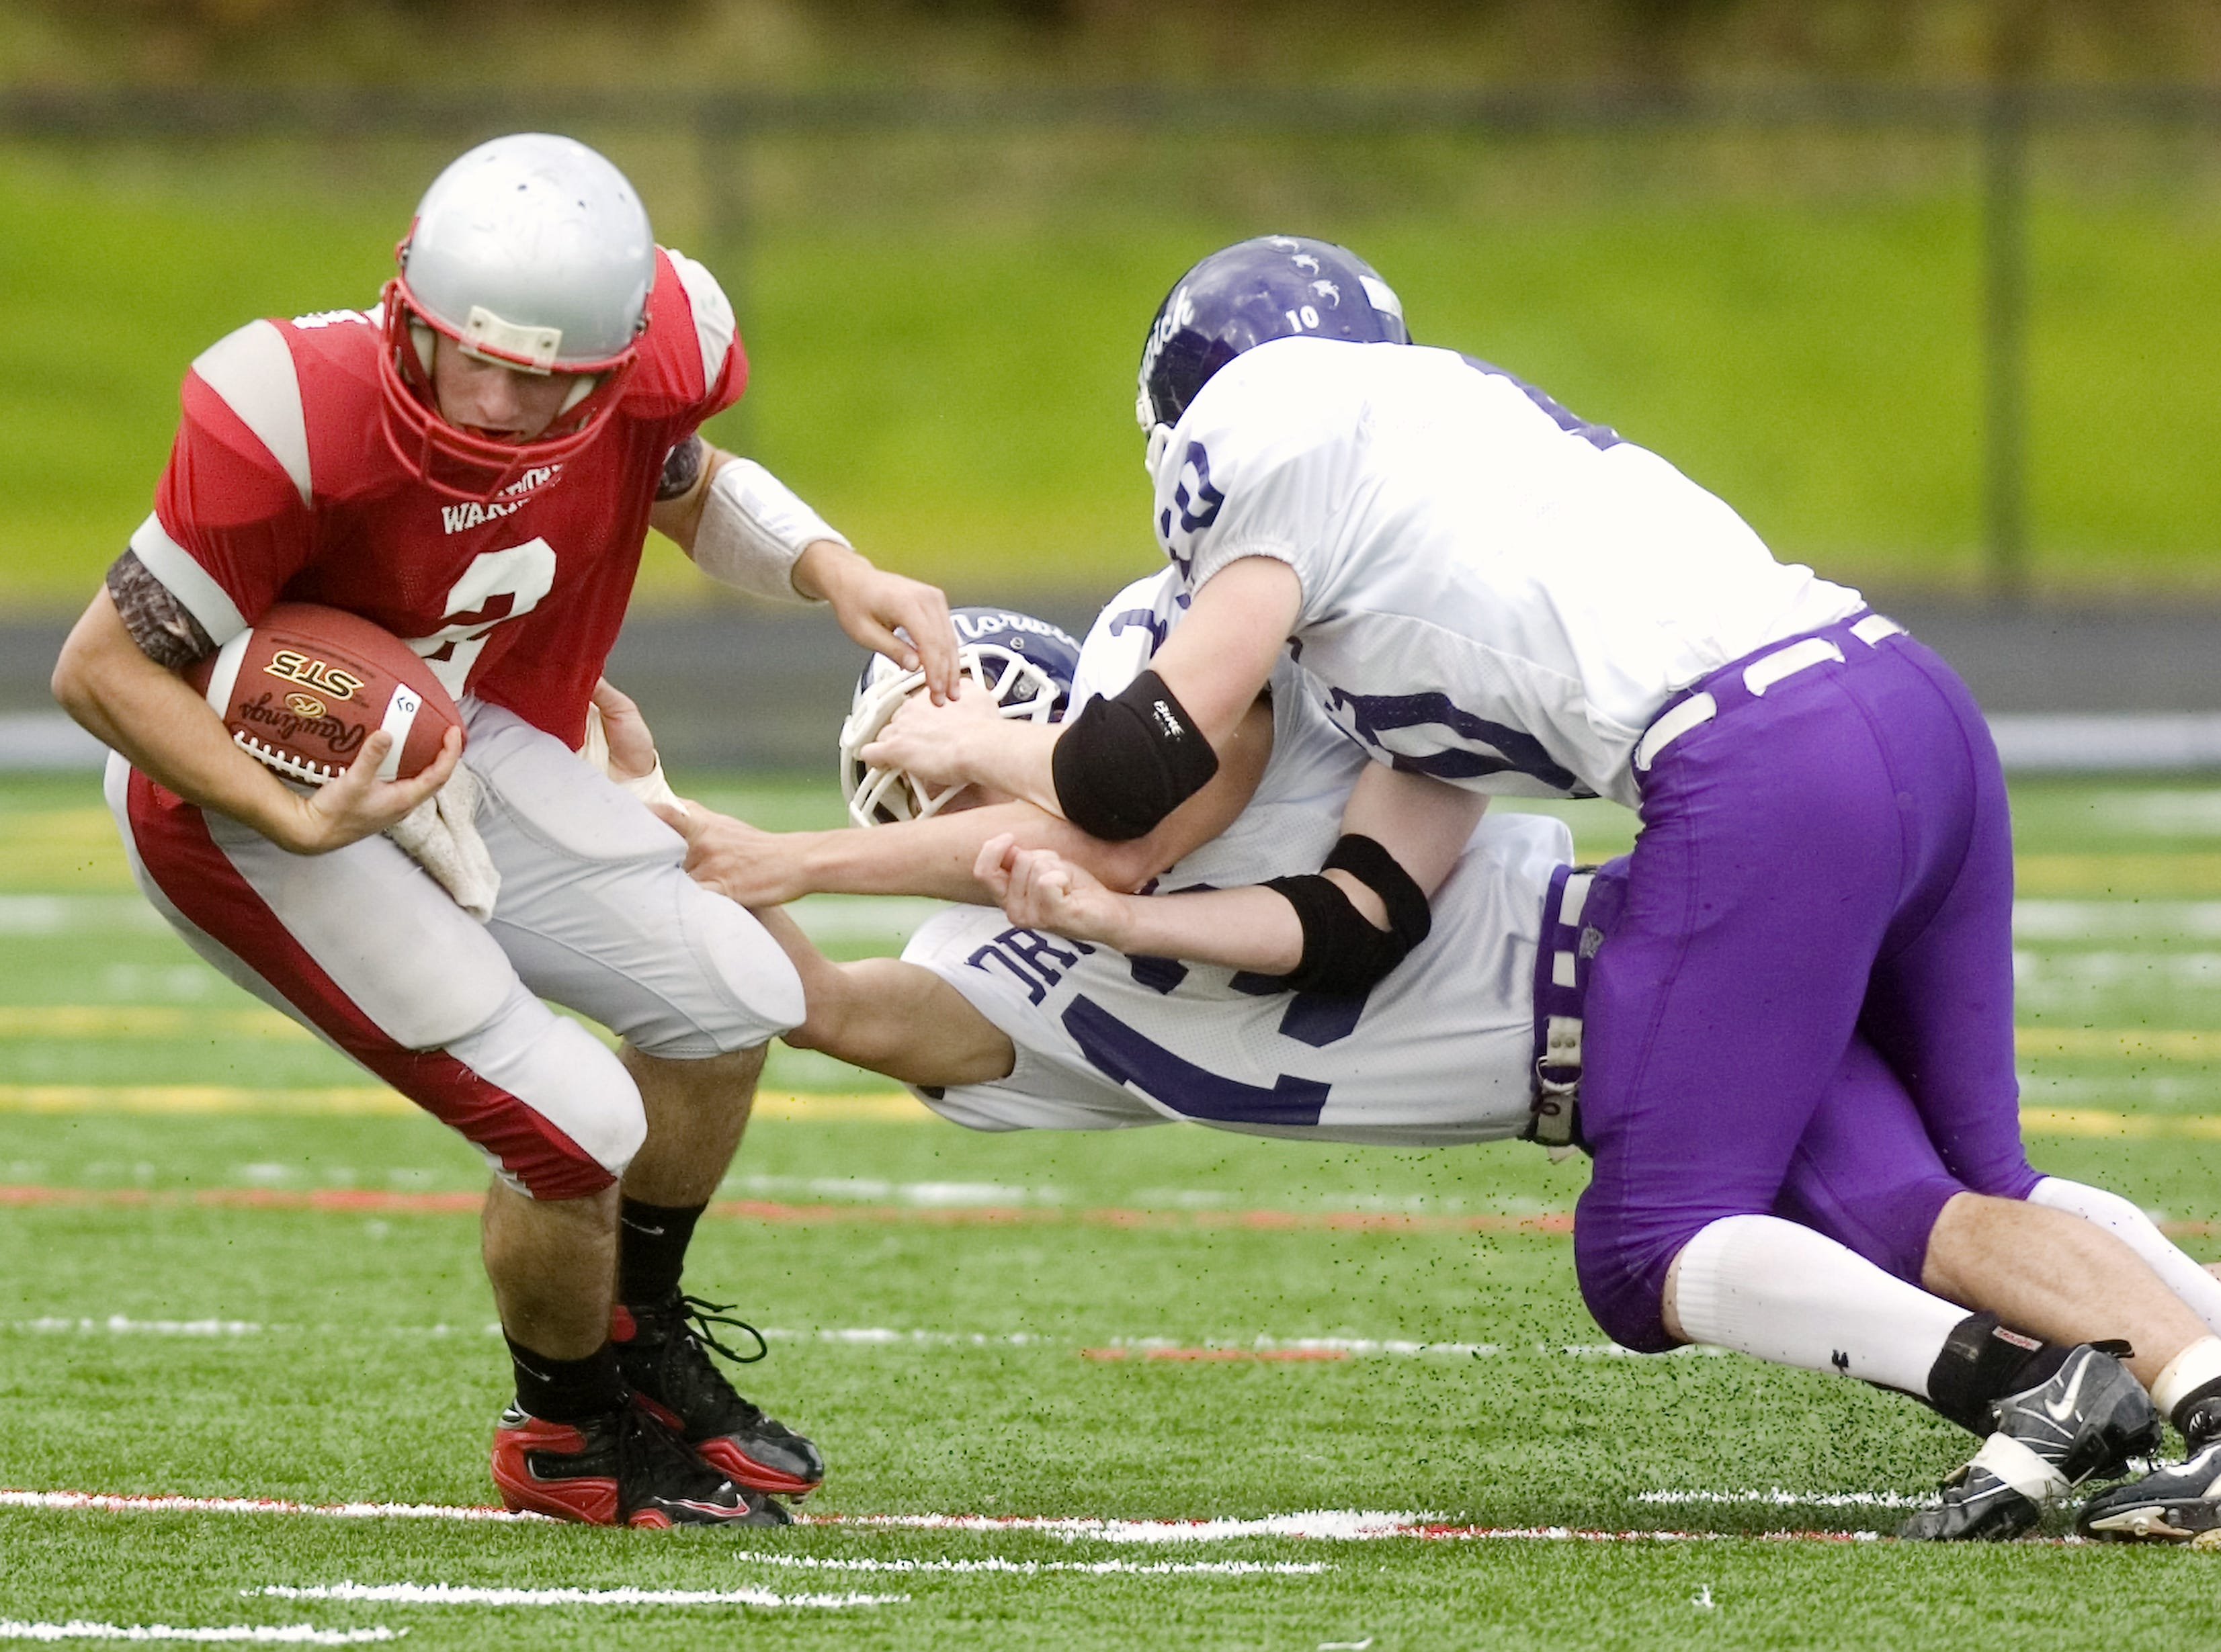 From 2009: Norwich's Morgan Cleveland, right, and Mike Reilly team up to take down Chenango Valley's Ricky Ruffo in the first quarter of Saturday's game at Greene.